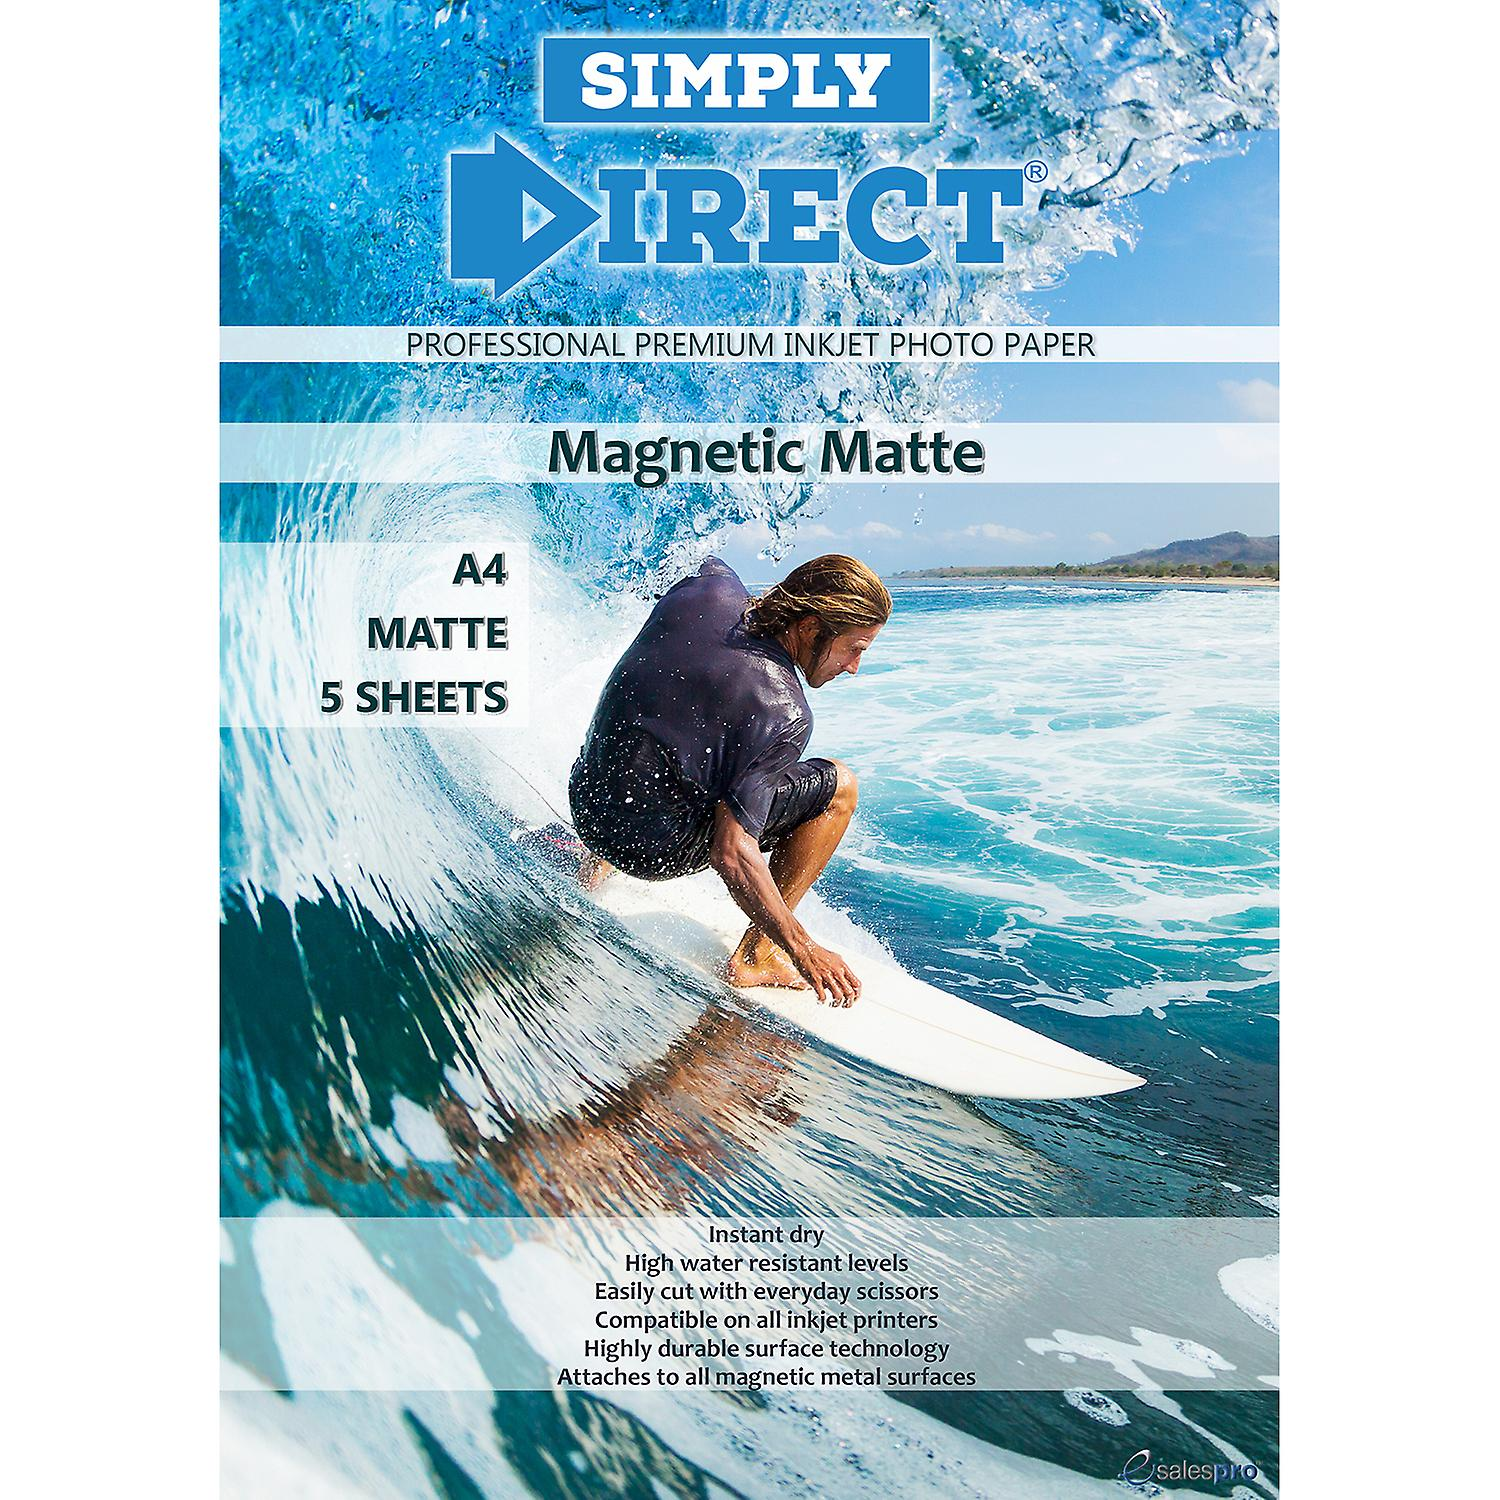 5 x Simply Direct A4 Magnetic Matte Inkjet Photo Printing Paper - 690gsm - Professional Premium Photographic Paper